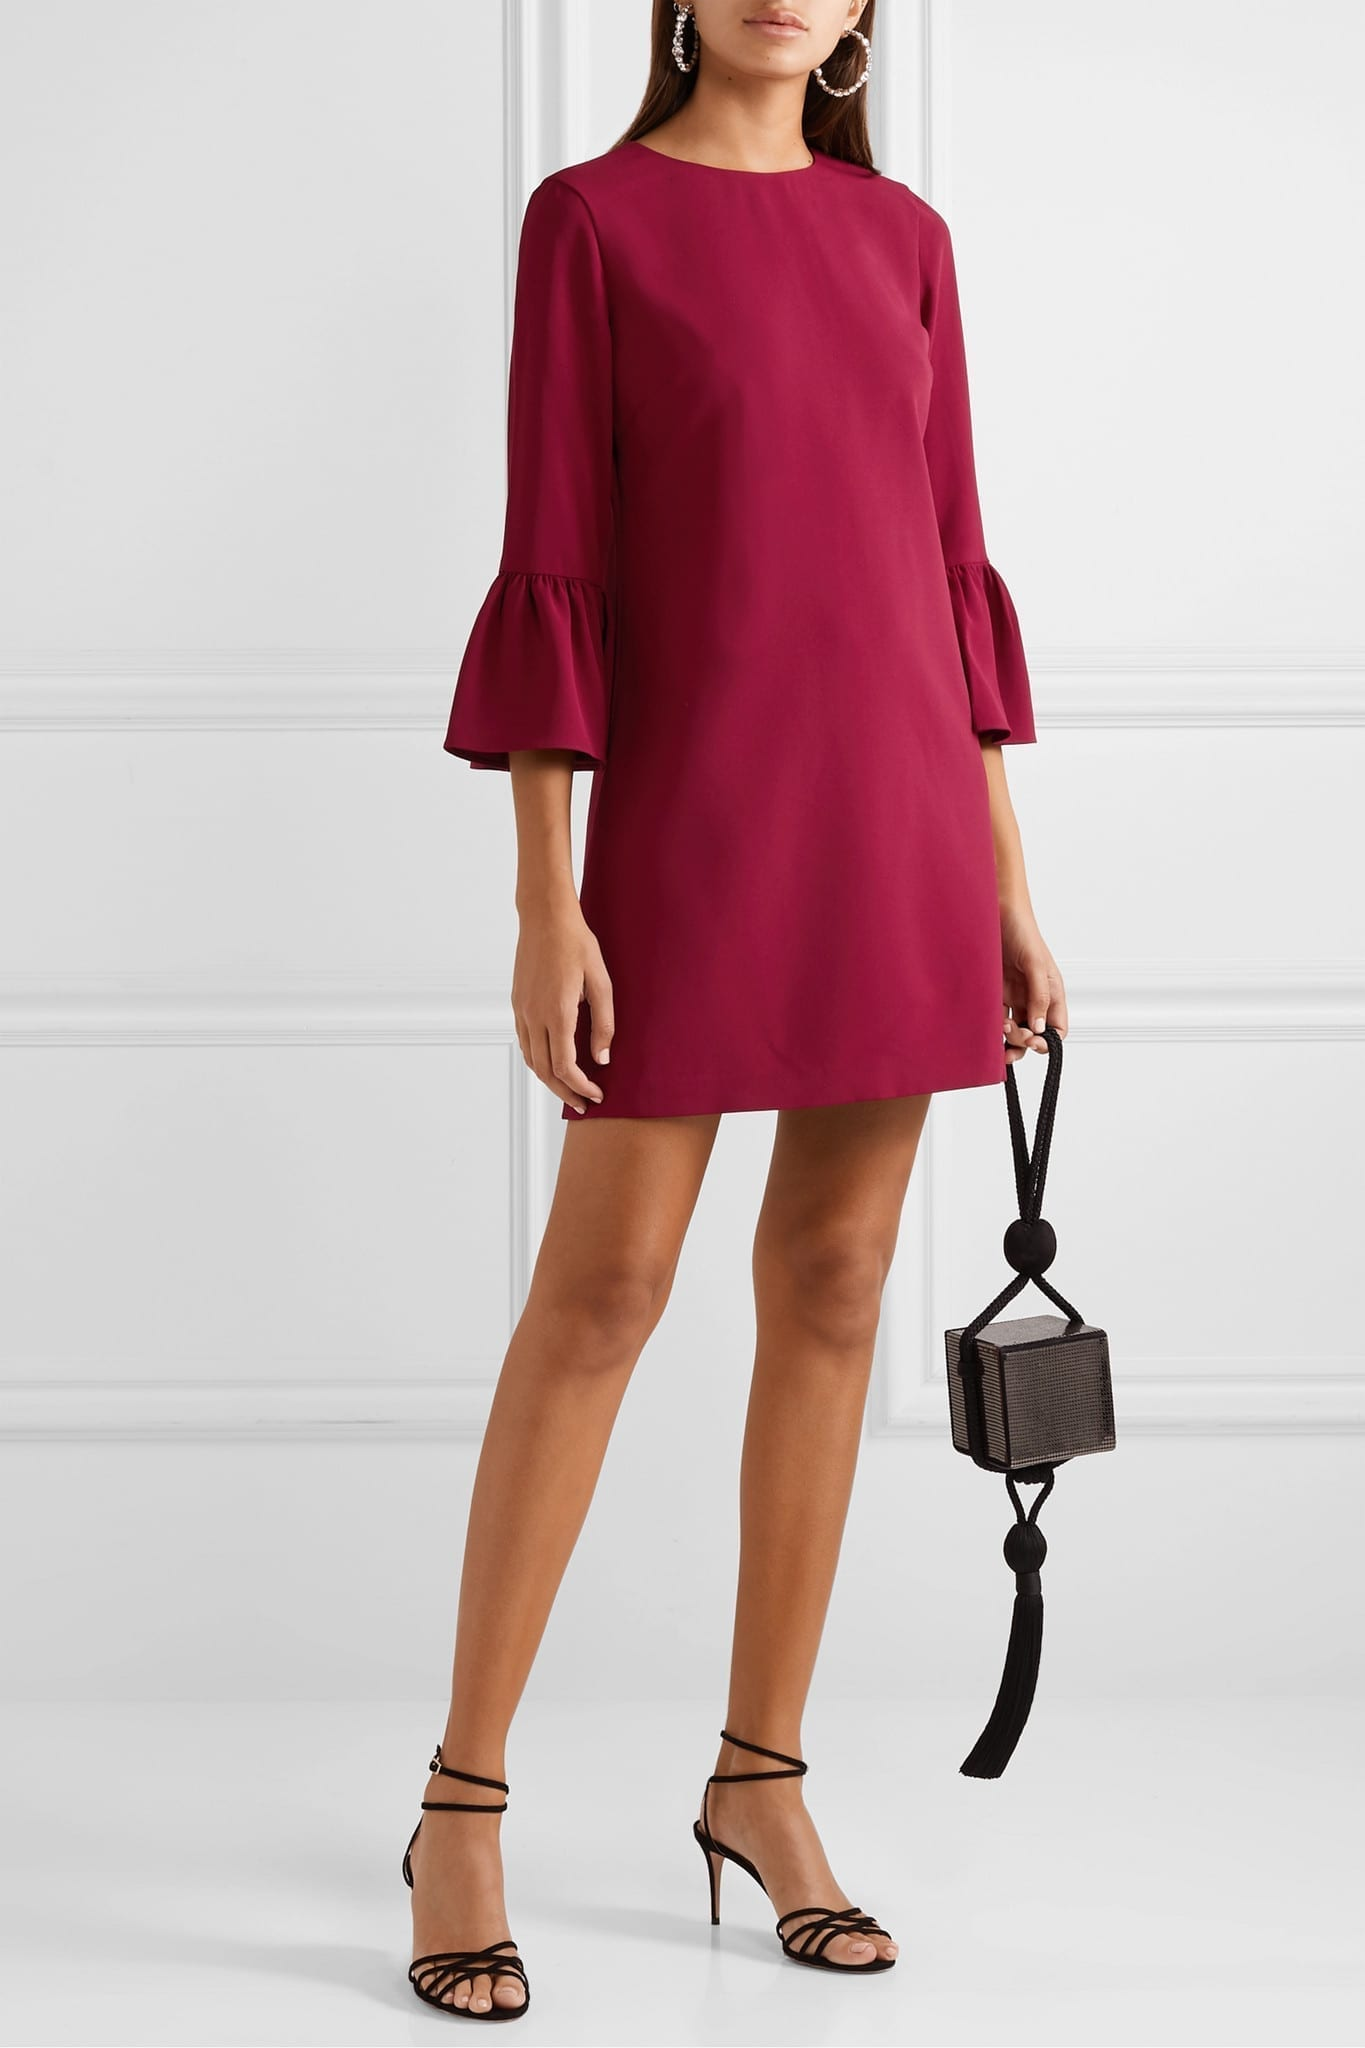 ALICE + OLIVIA Coley Crepe Mini Dress